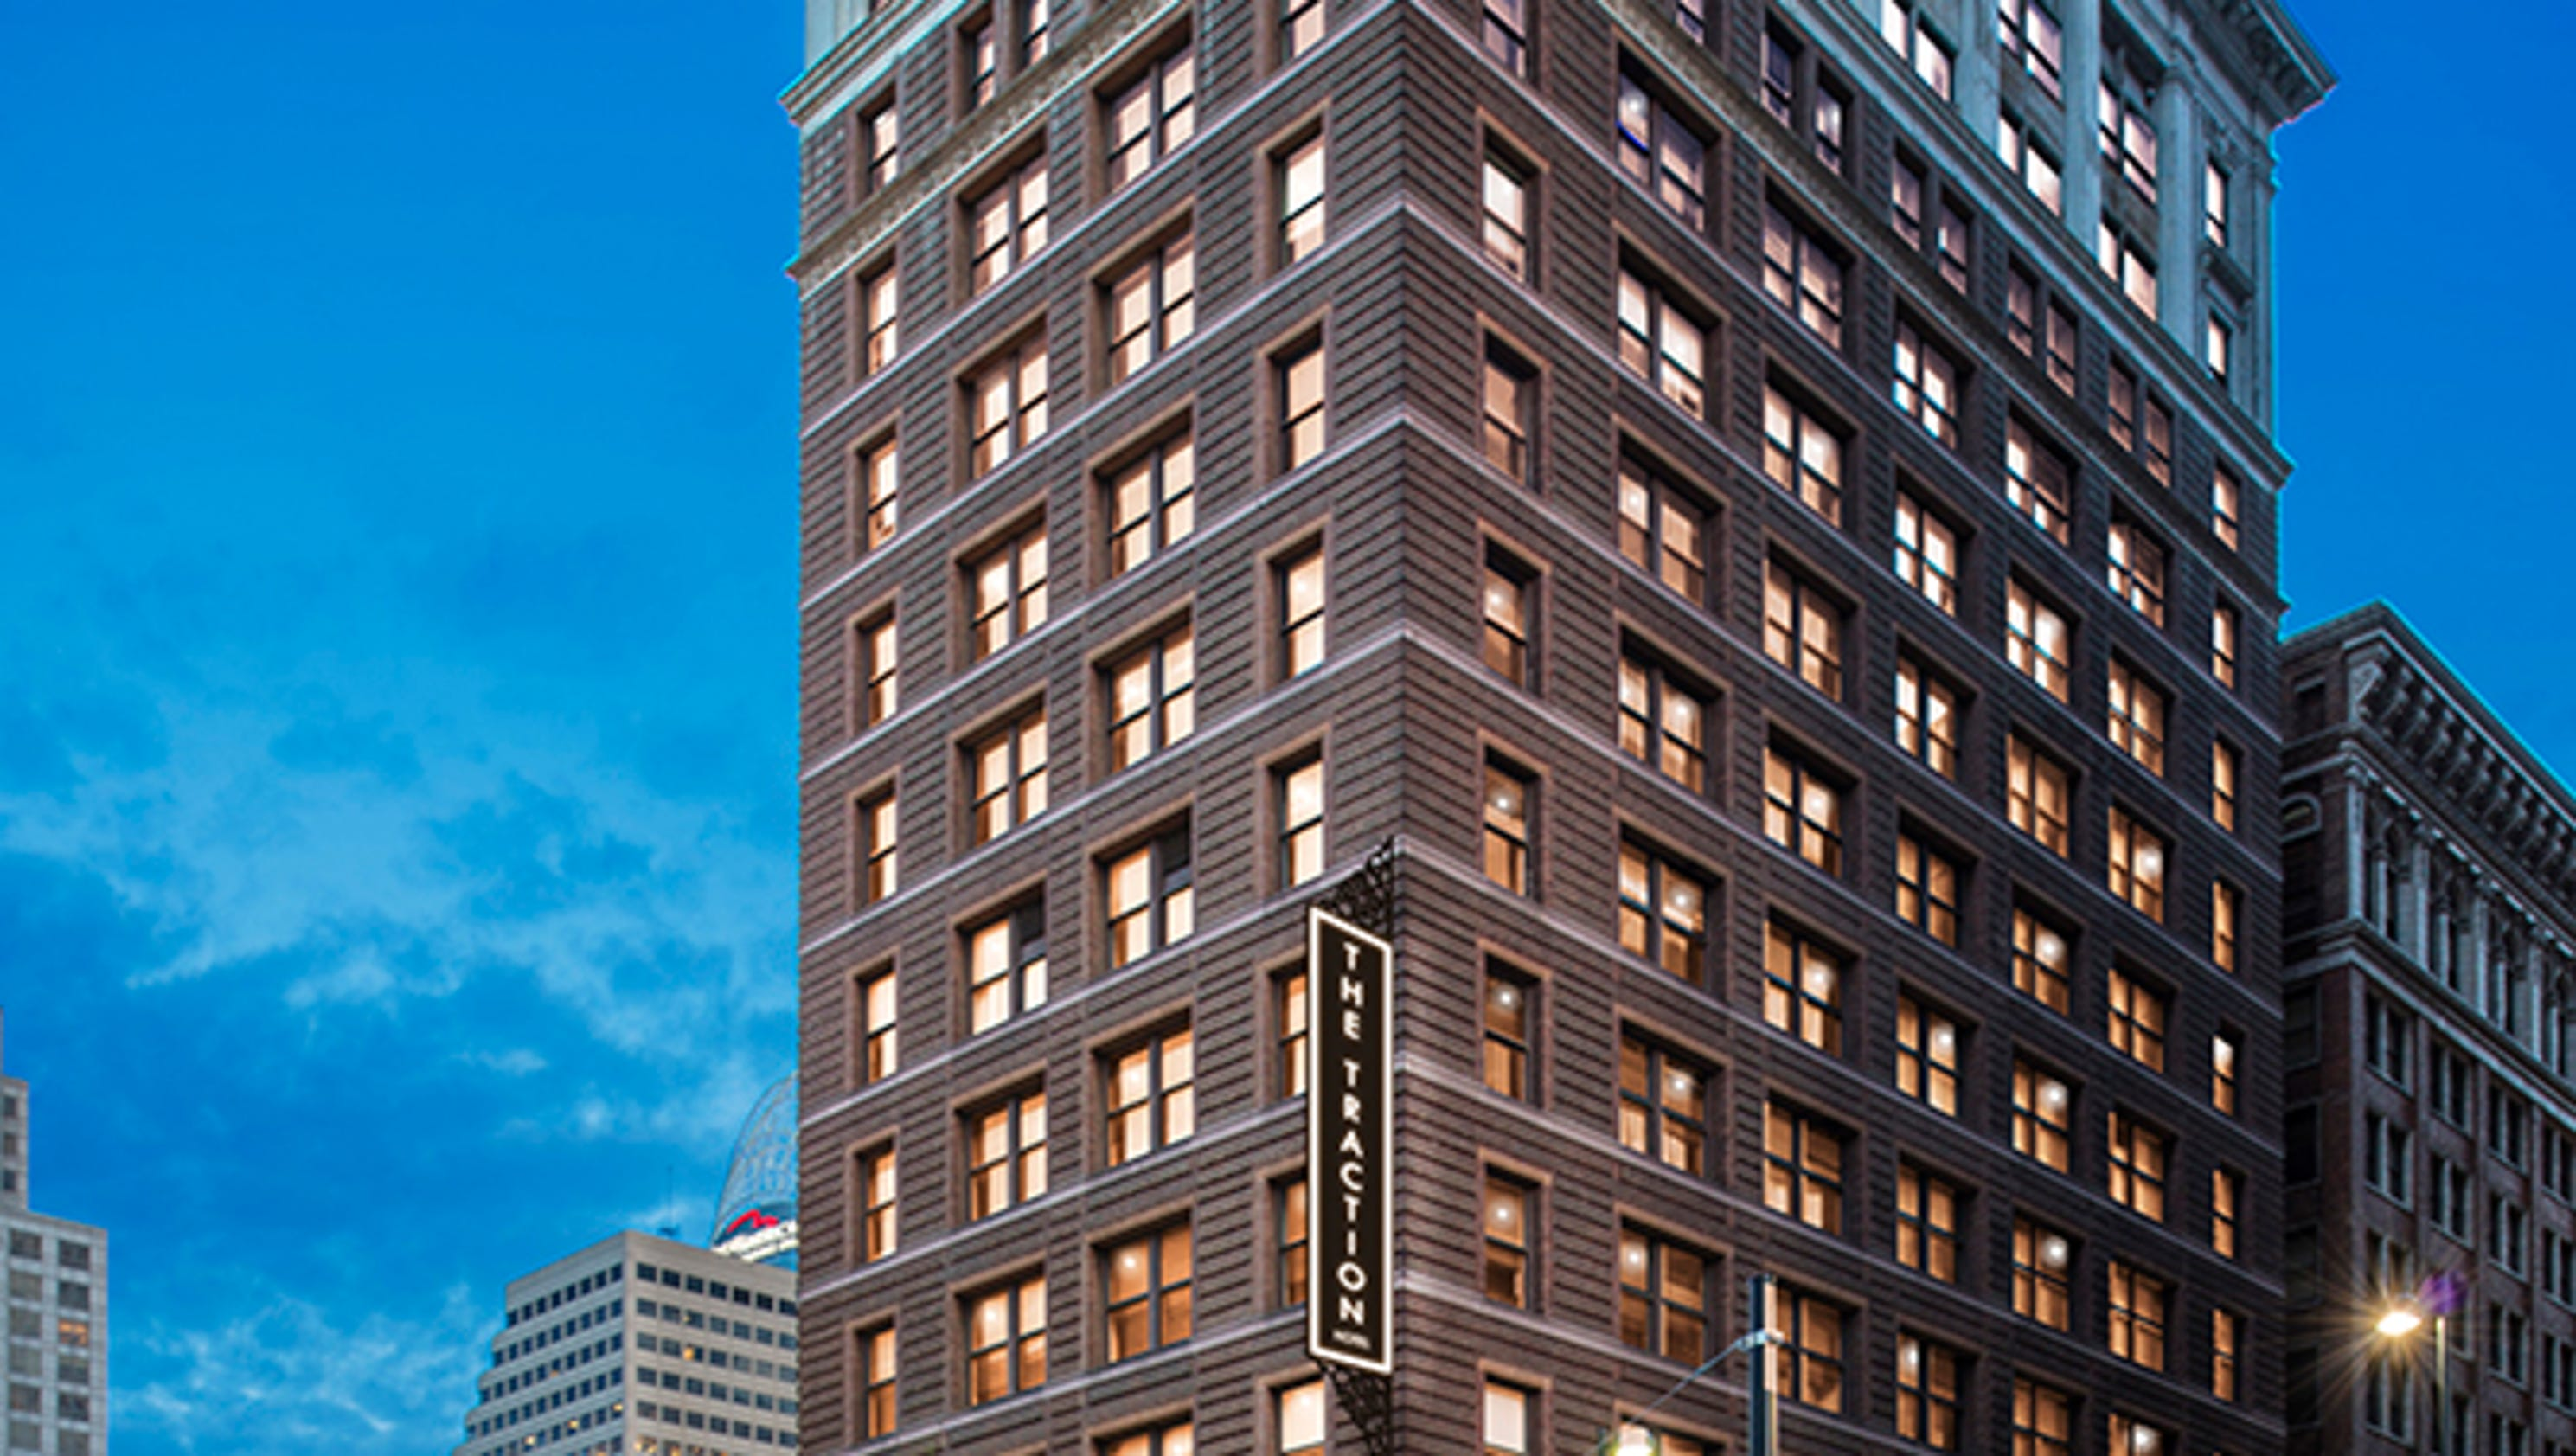 Kimpton Hotels Is Planning To Convert The Historic Traction Building At Fifth Walnut Into A Luxury Boutique Hotel Downtown